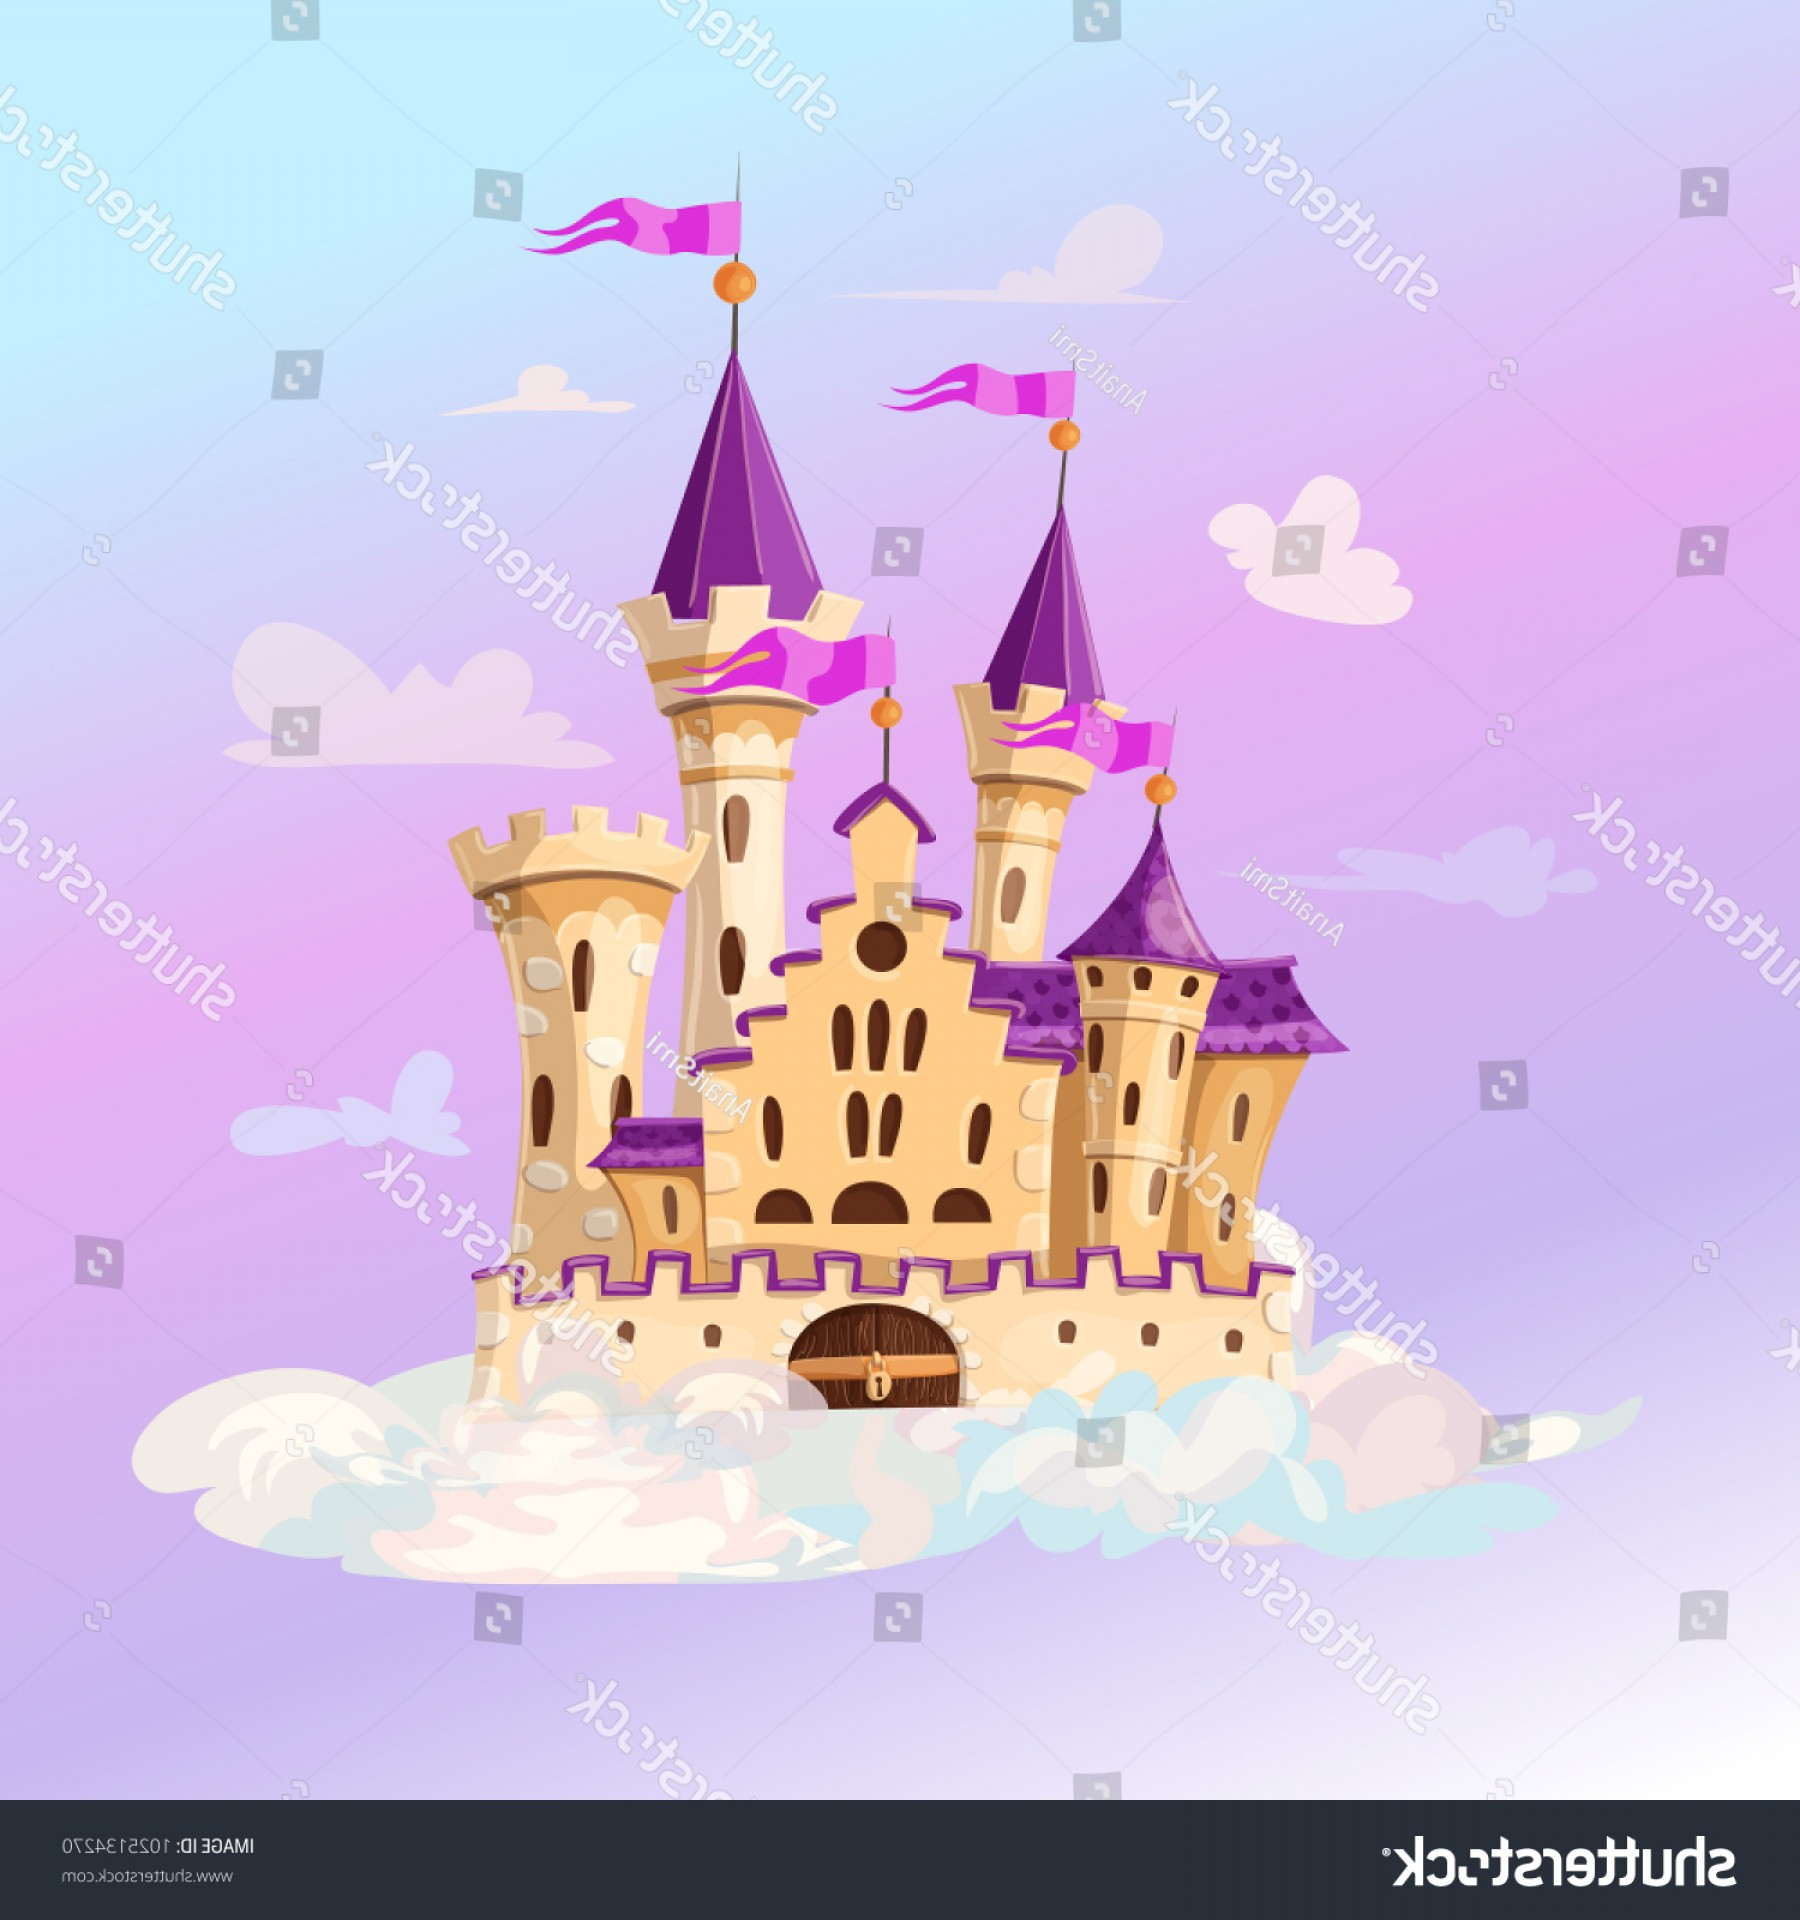 Vectors Fortress Flying: Fairytale Cartoon Castle Cute Fantasy Flying